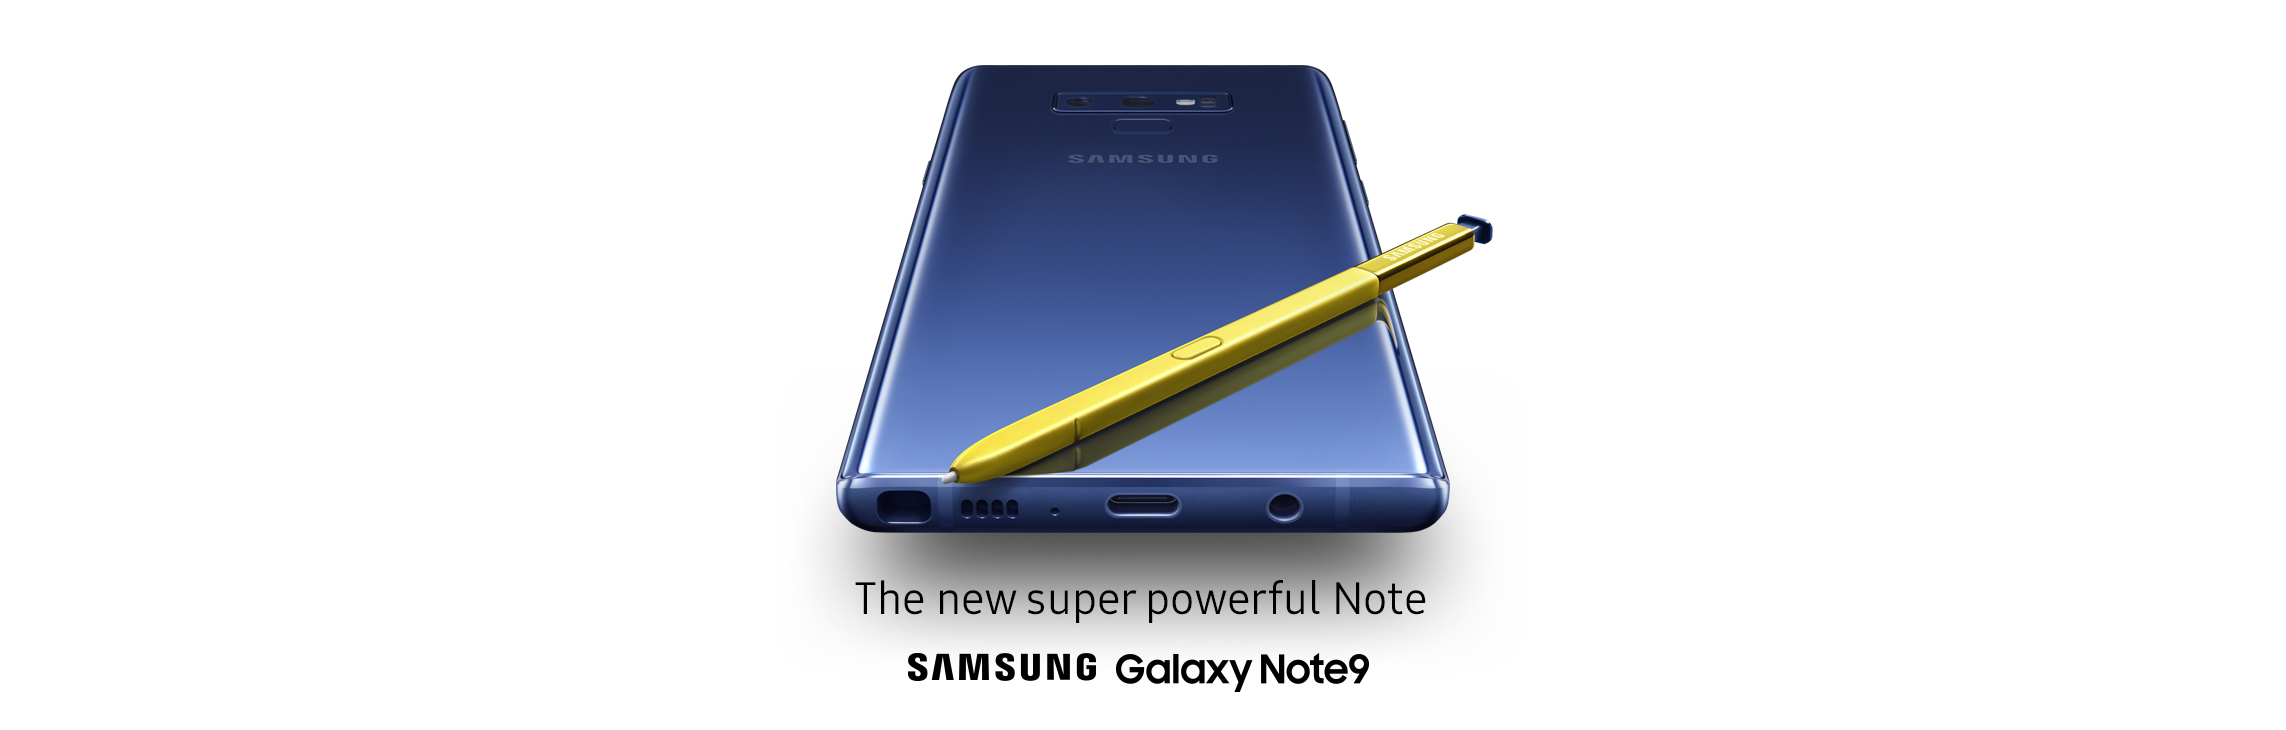 The new super powerful Note - Samsung Galaxy Note9